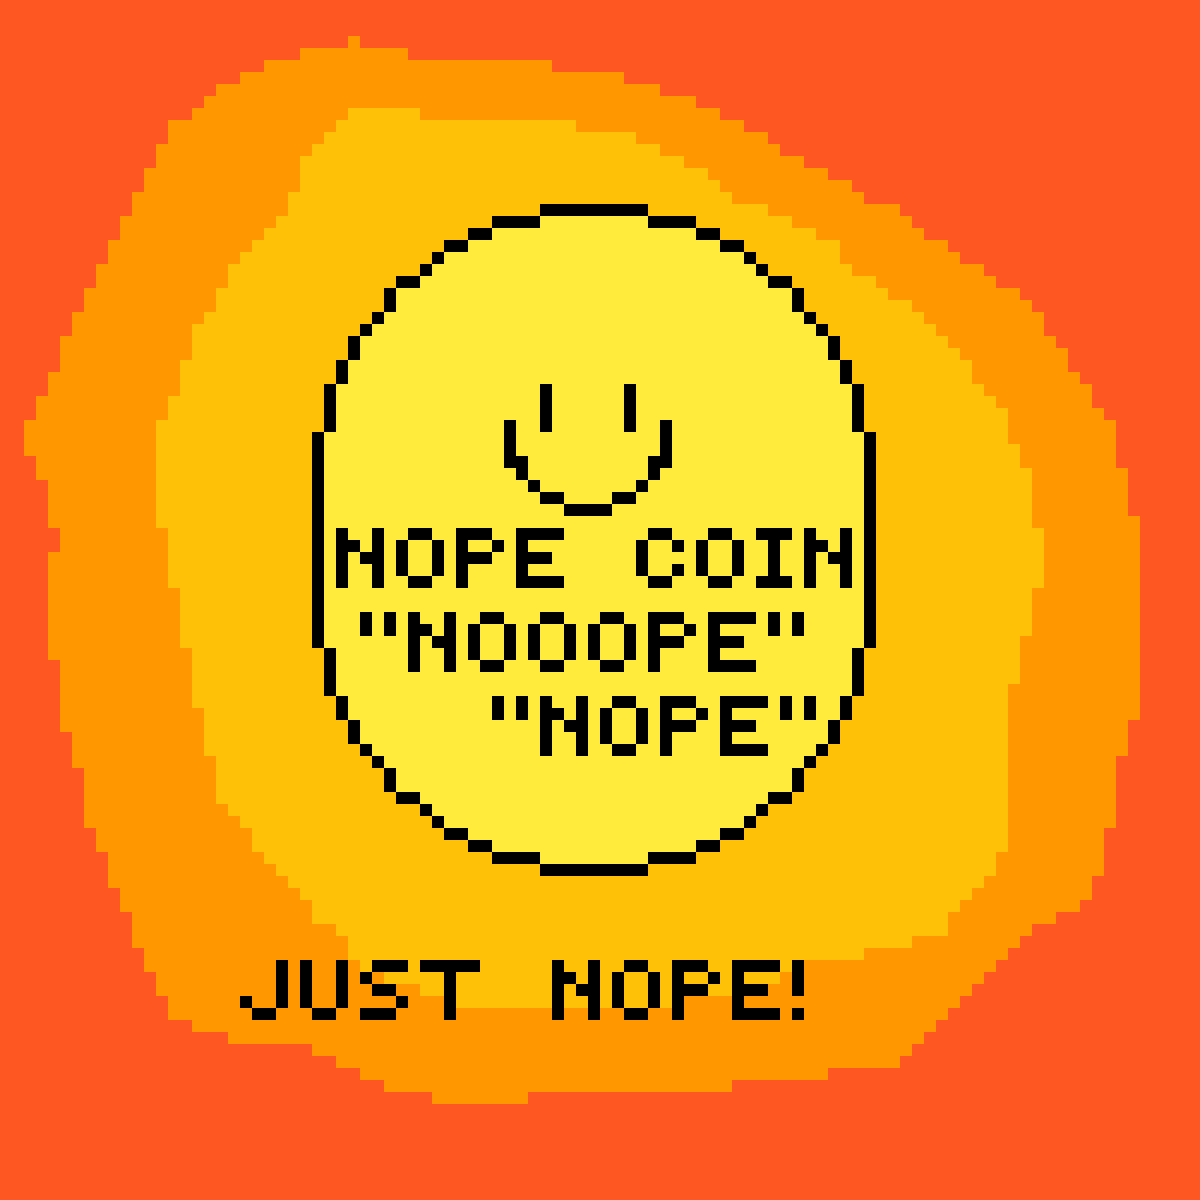 NOPE COIN :) by pros